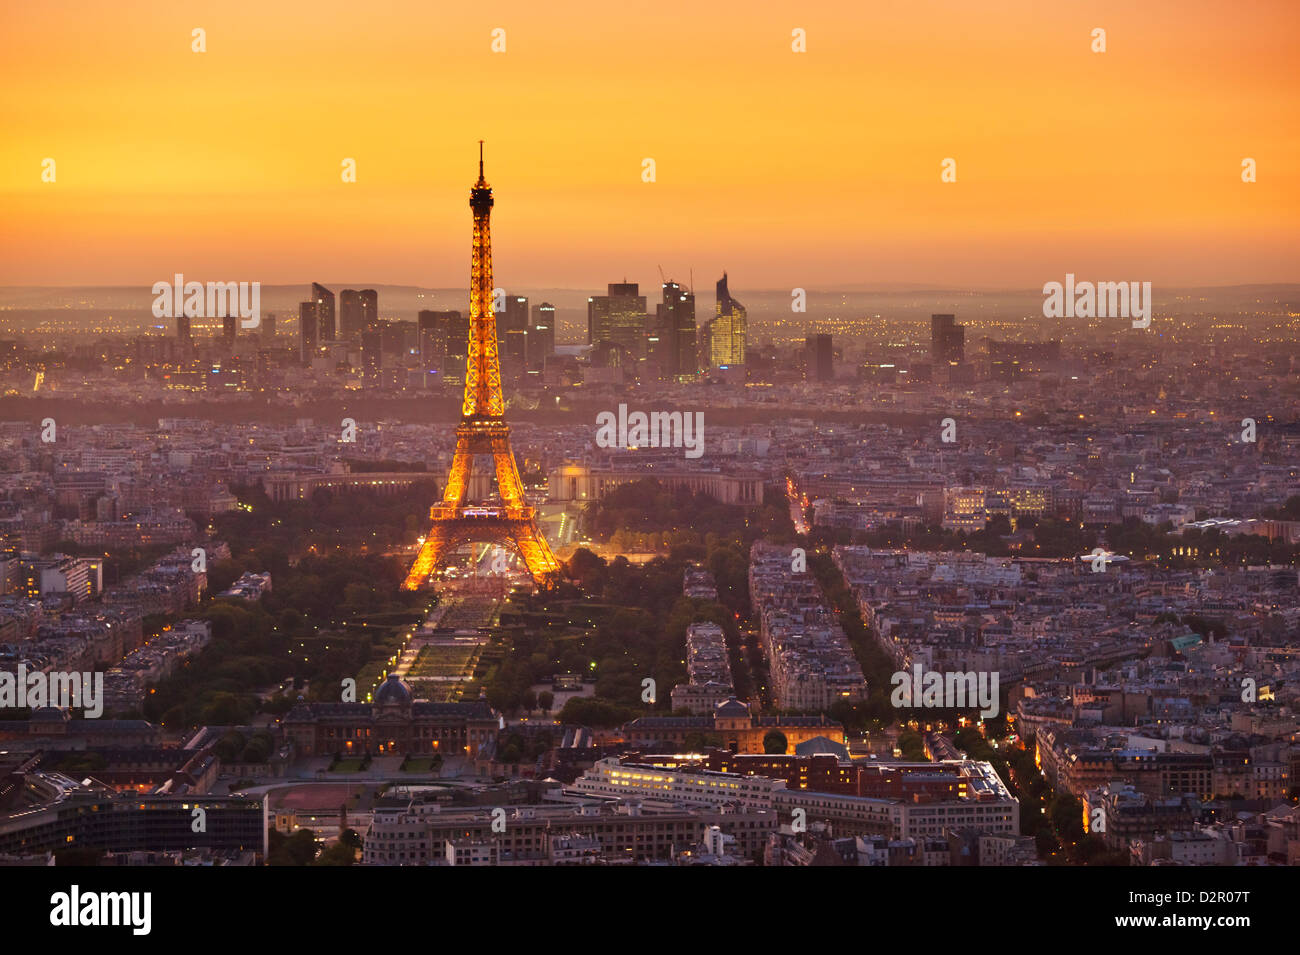 Toits de Paris au coucher du soleil avec la Tour Eiffel et La Défense, Paris, France, Europe Photo Stock